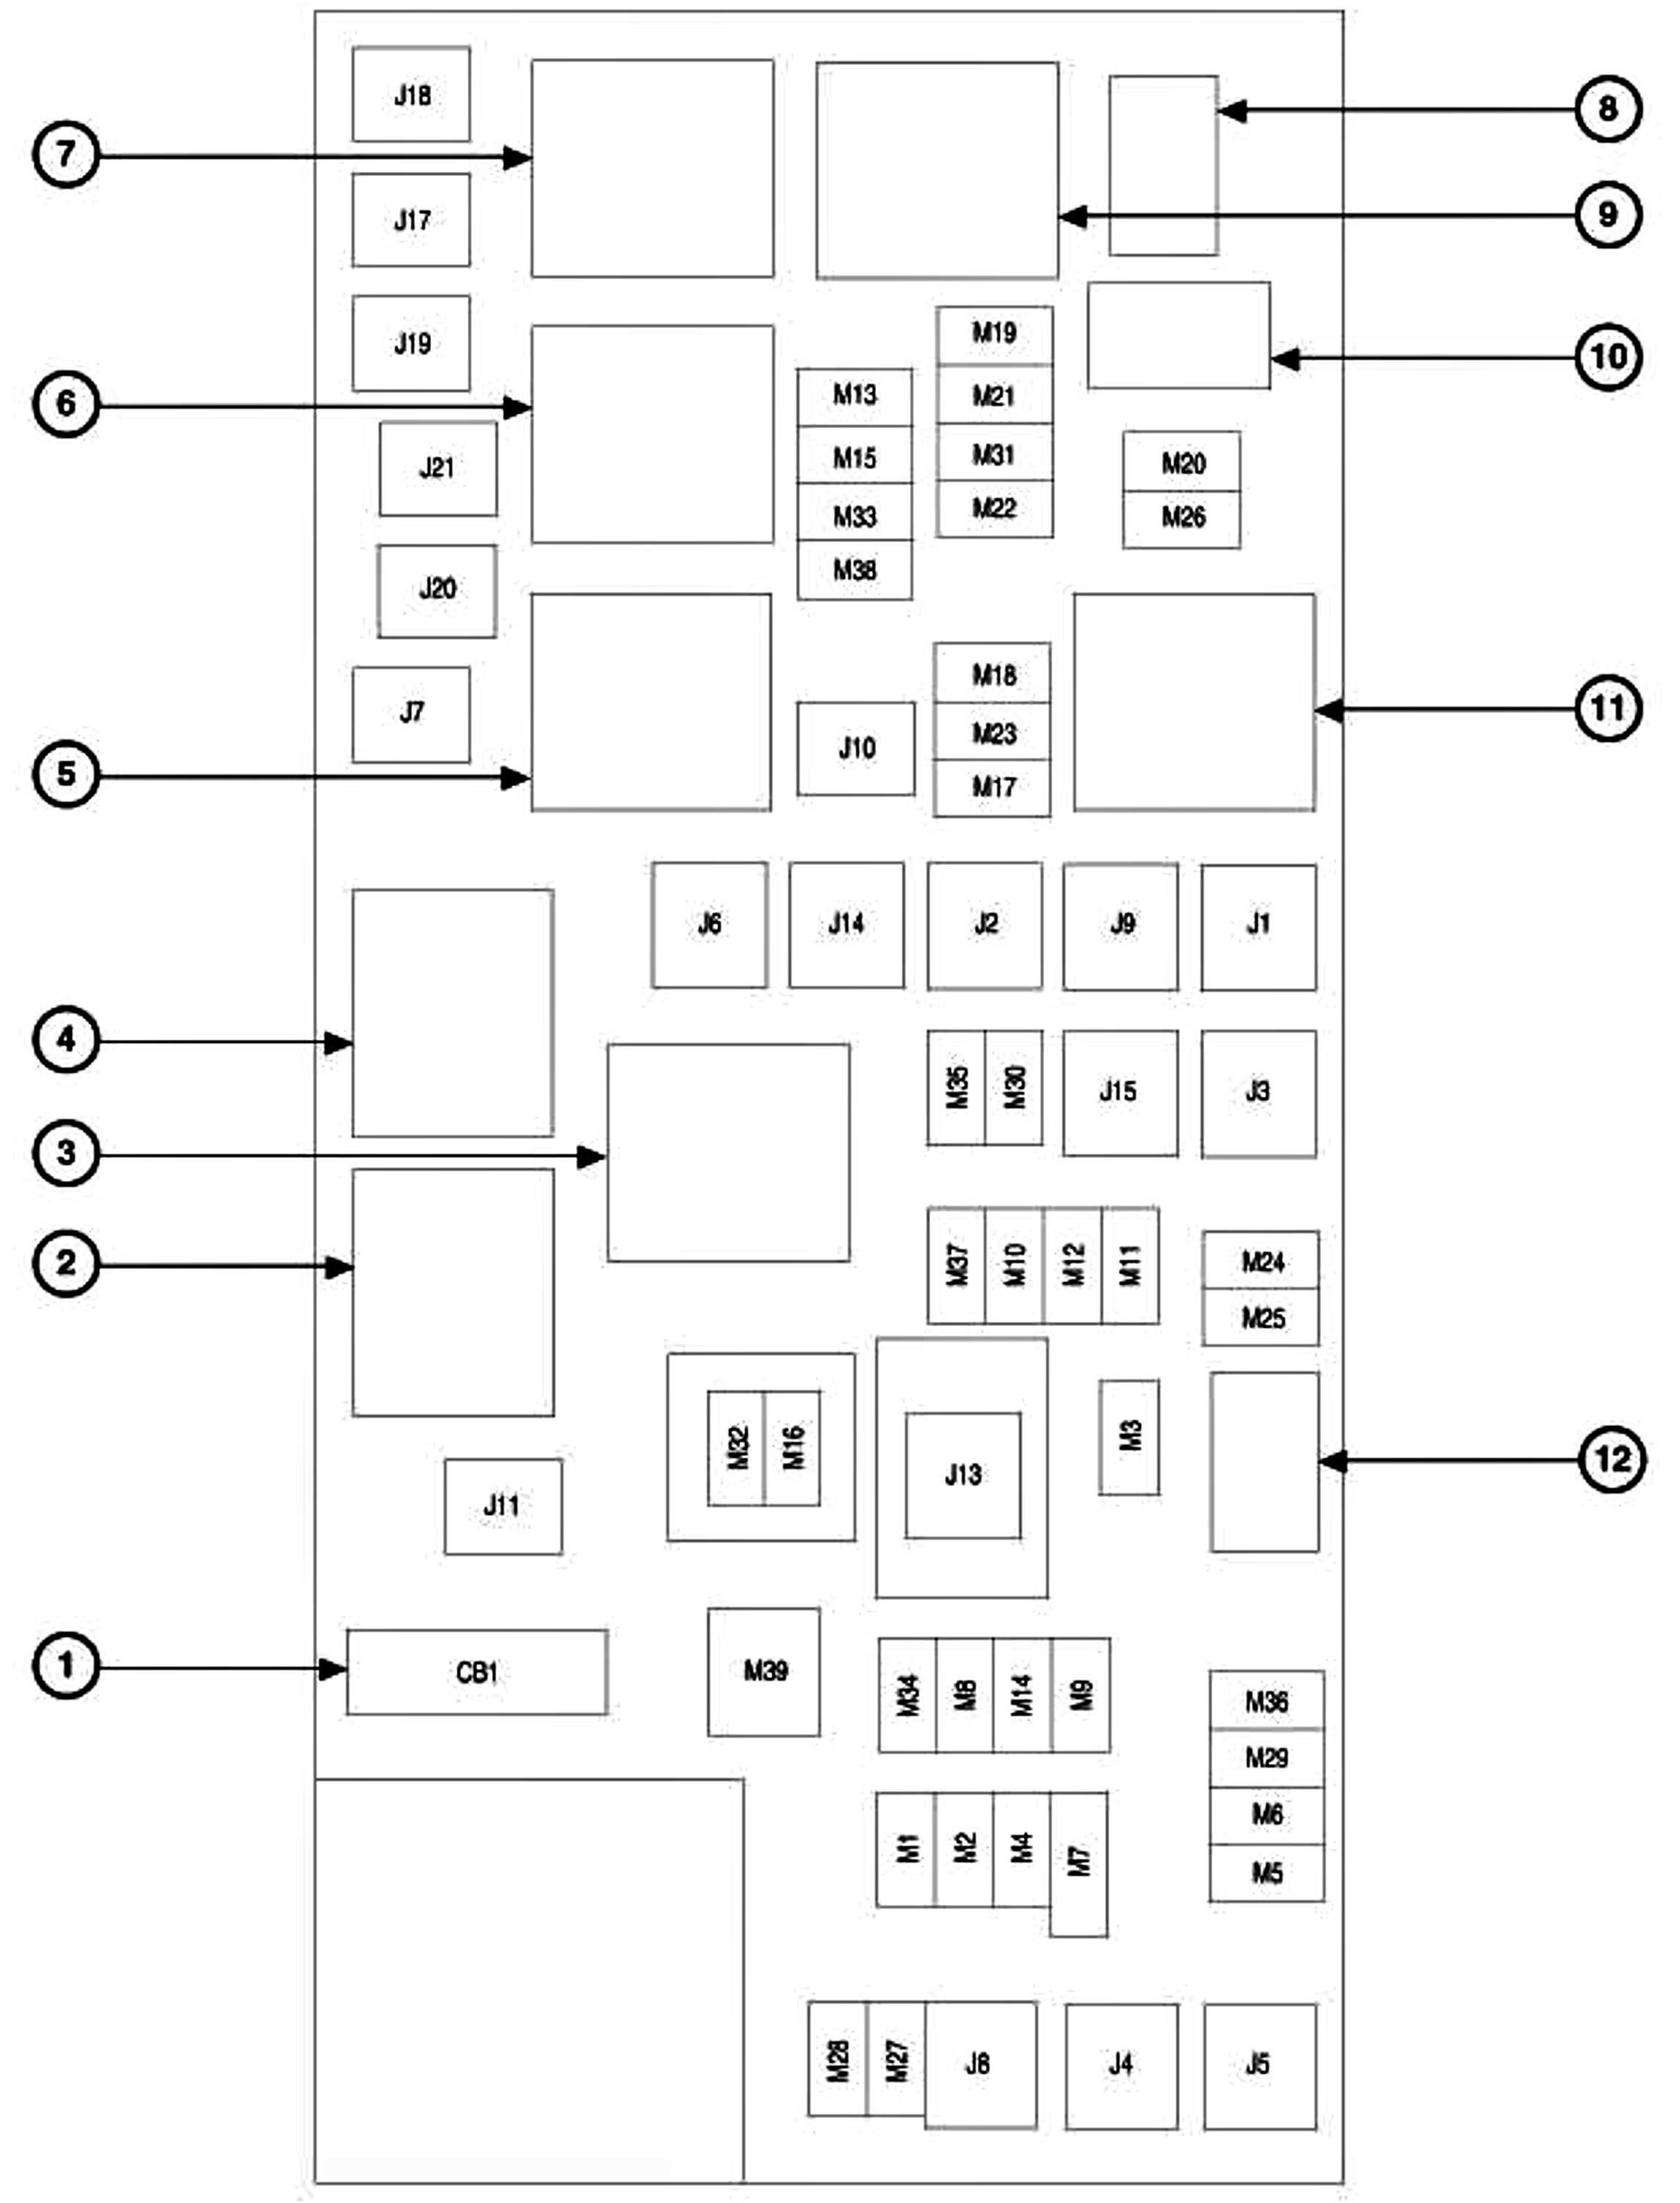 2006 jeep commander fuse box diagram jpeg http carimagescolay rh pinterest com 2006 jeep commander interior fuse panel diagram 2006 jeep commander interior fuse diagram